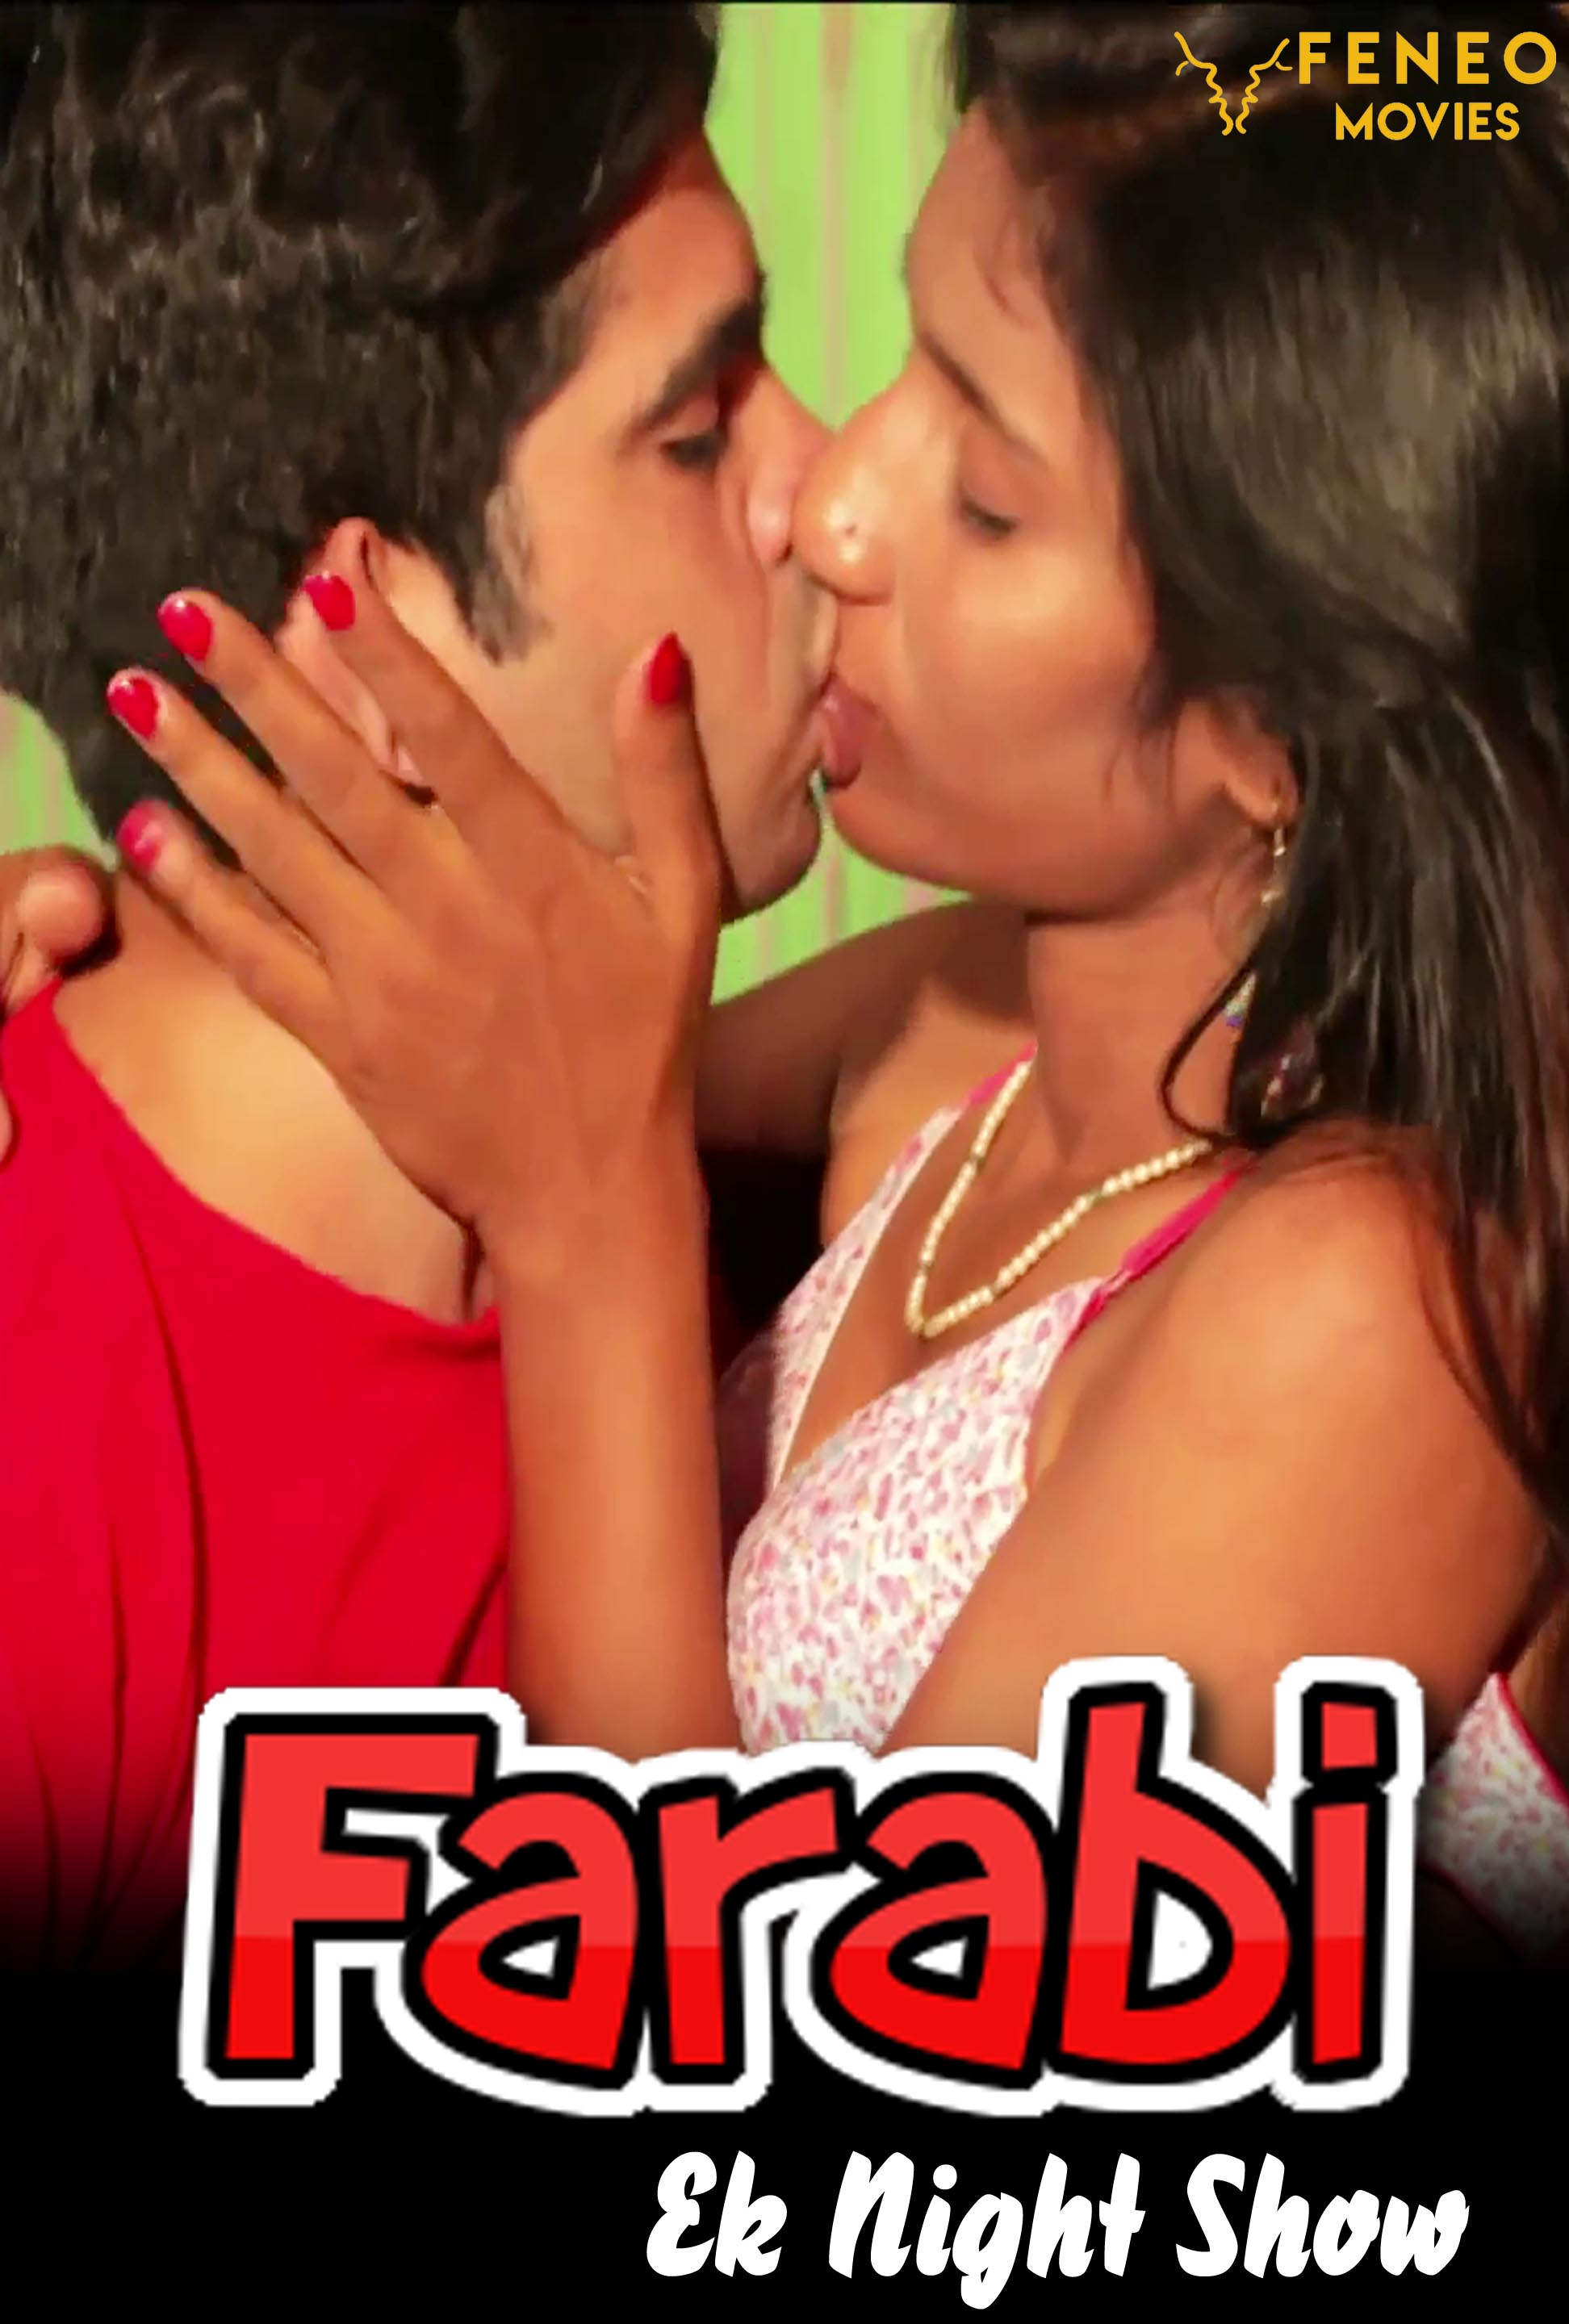 Farabi 2020 Hindi S01E02 Feneomovies Web Series 720p HDRip 150MB x264 AAC